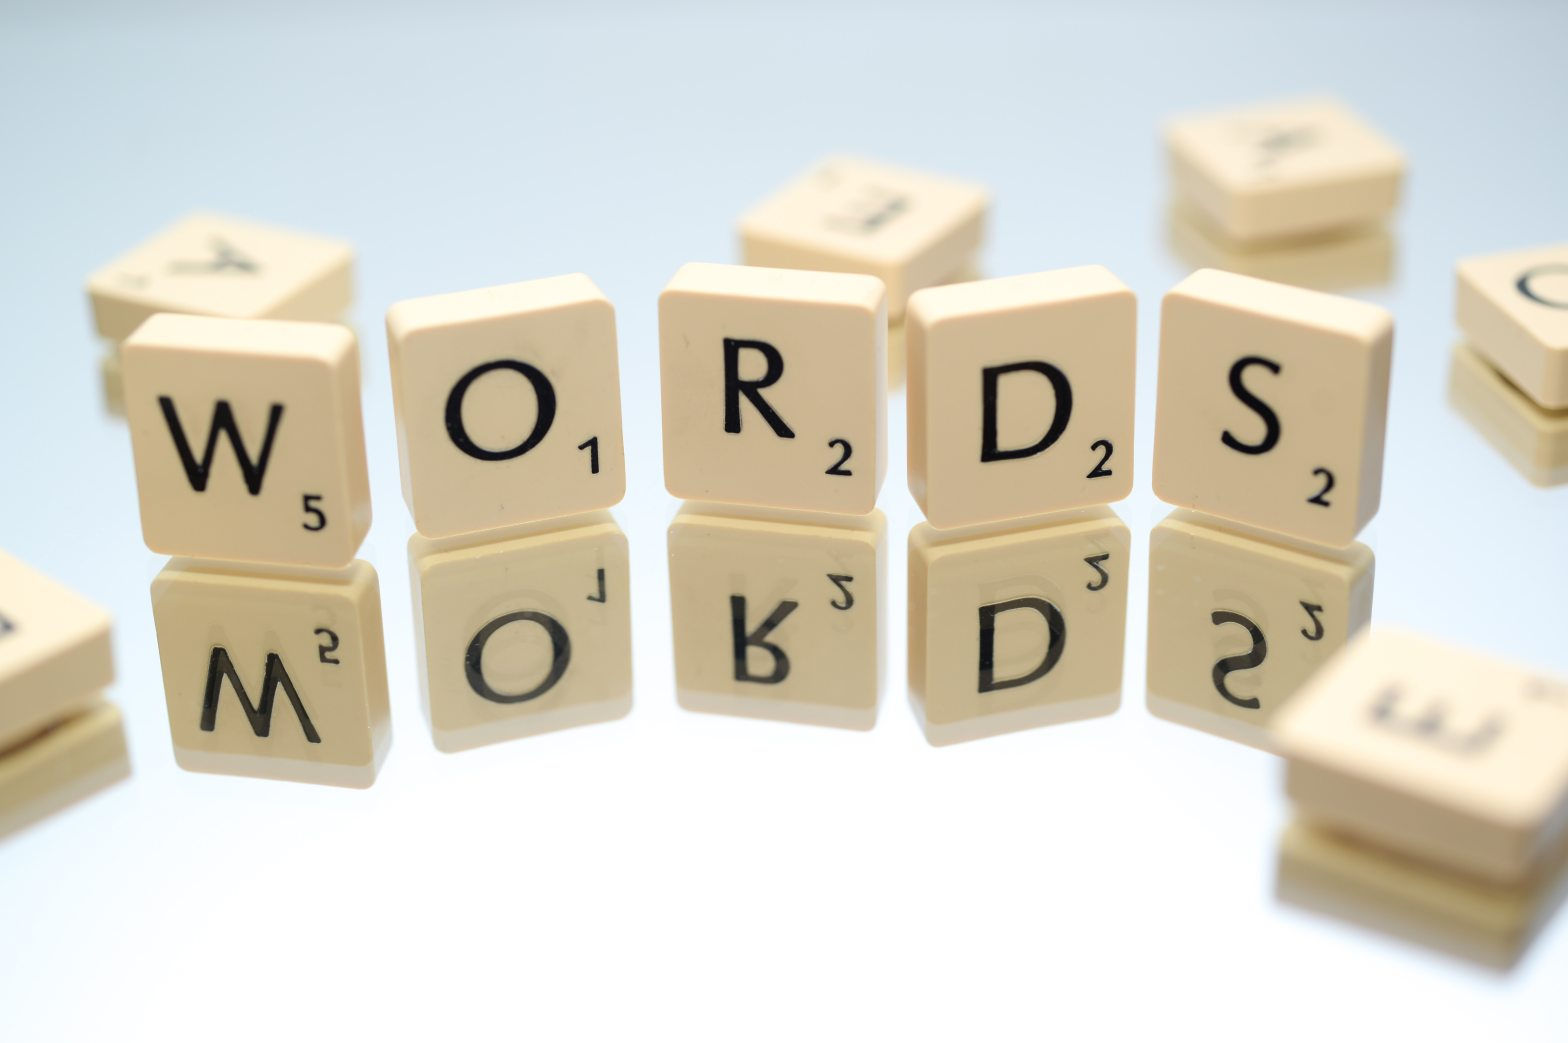 Scrabble tiles spelling the word WORDS